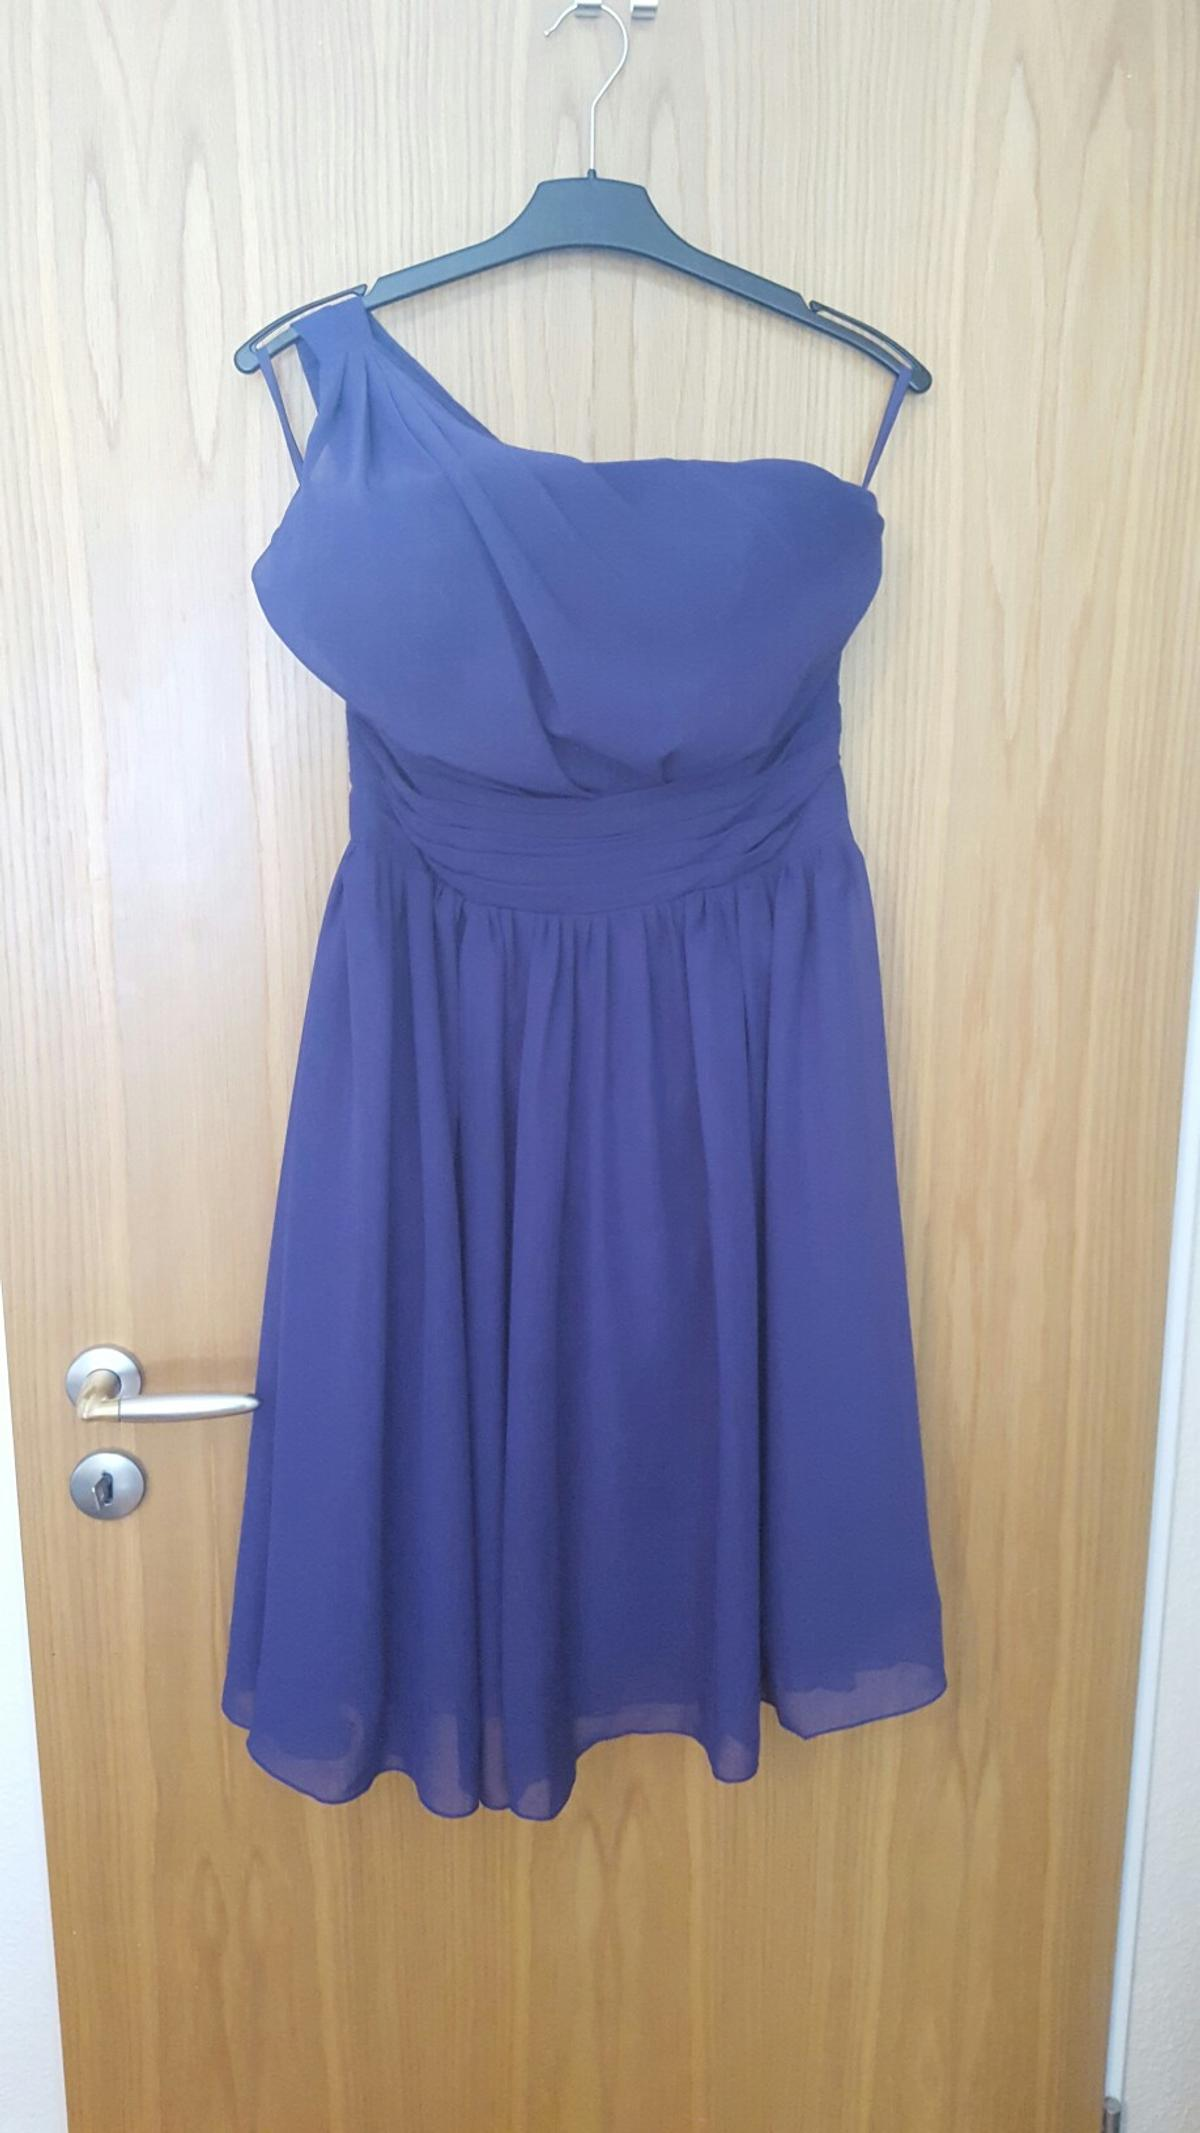 cocktailkleid lila, violett in 45359 essen for €30.00 for